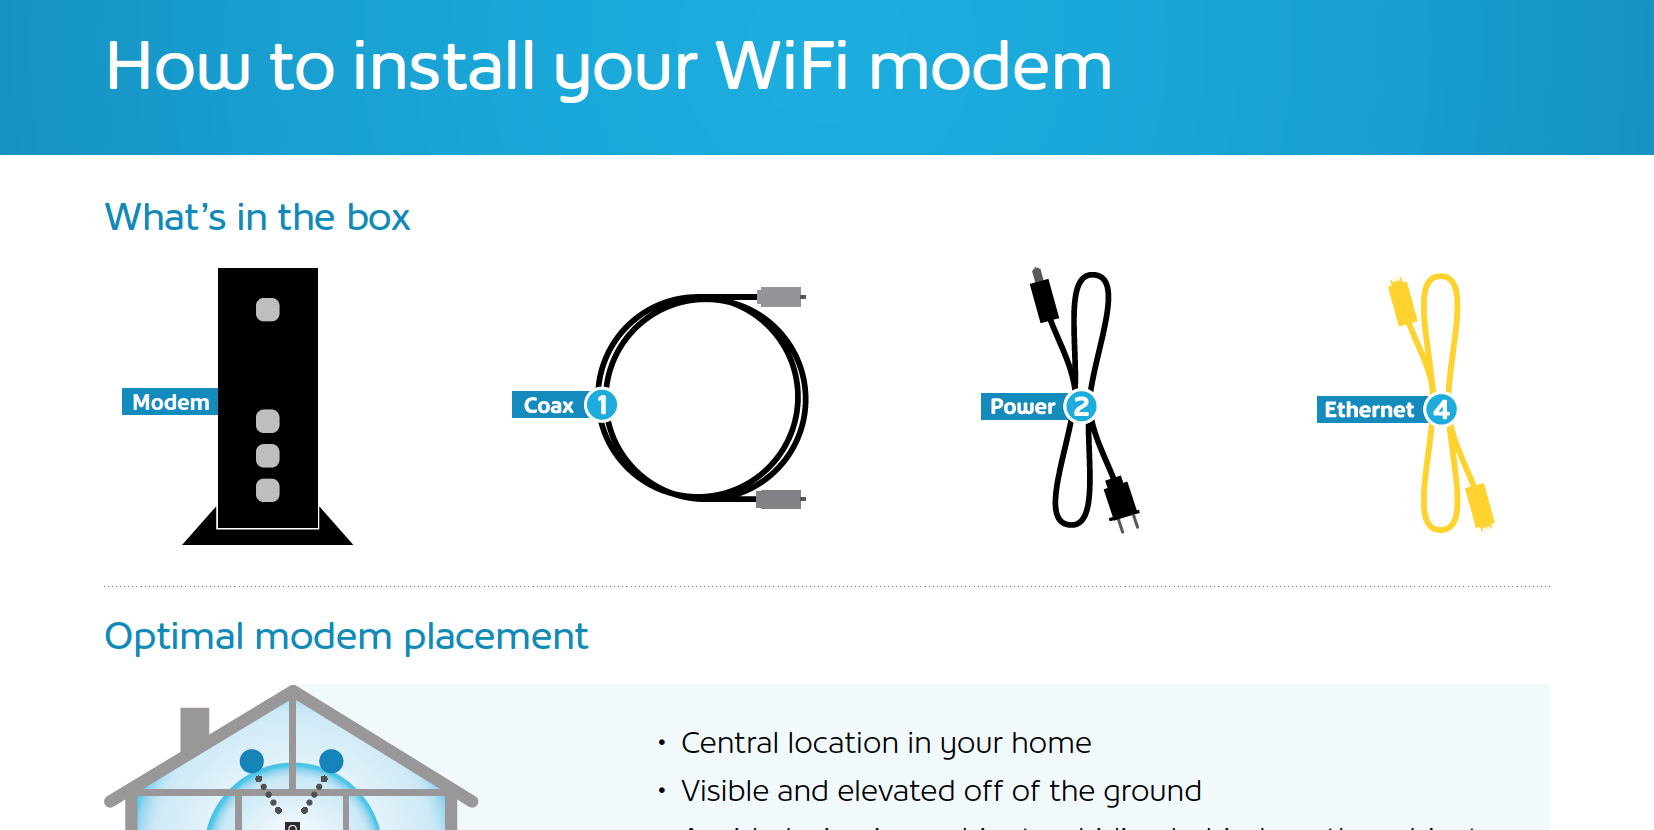 How to connect and activate your Internet modem